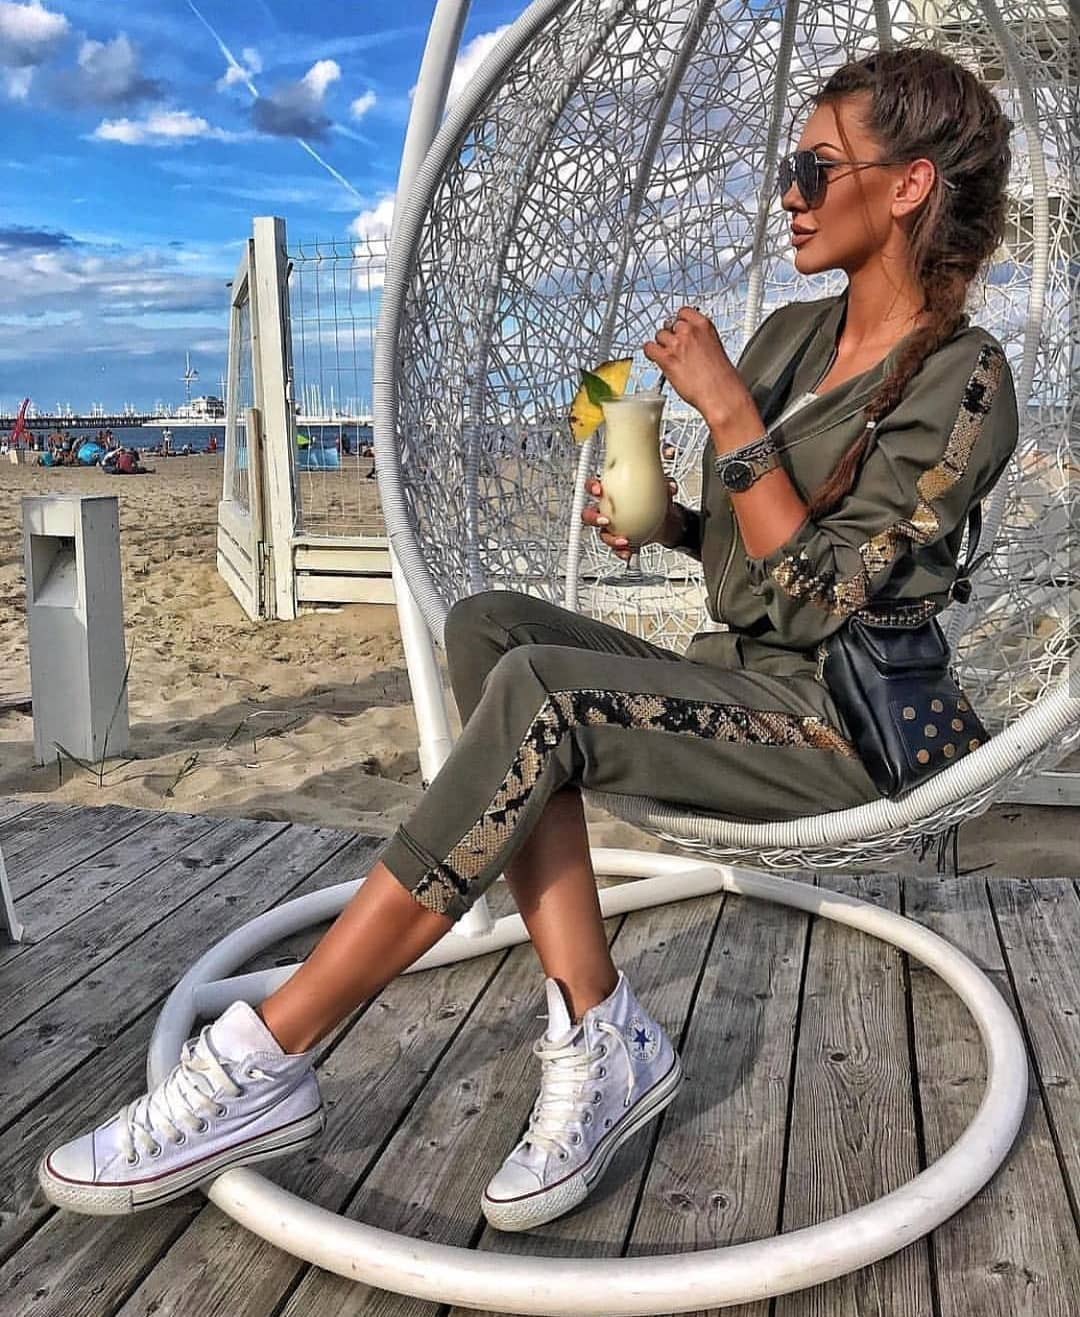 Khaki Green Track Suit And White Trainers For Summer 2020